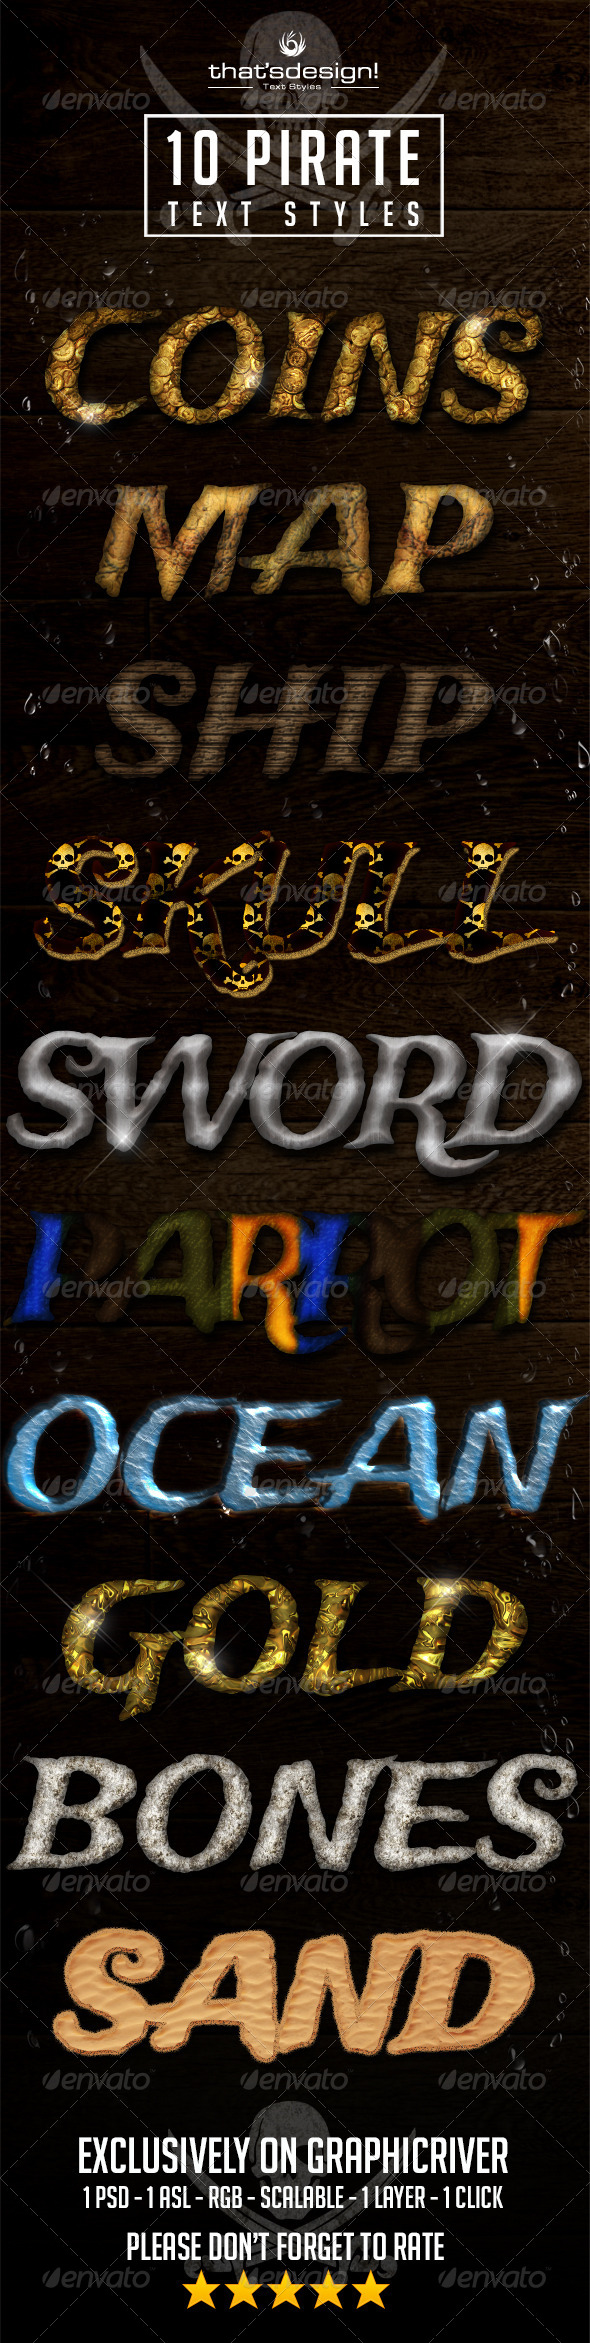 GraphicRiver 10 Pirate Text Styles 8388904